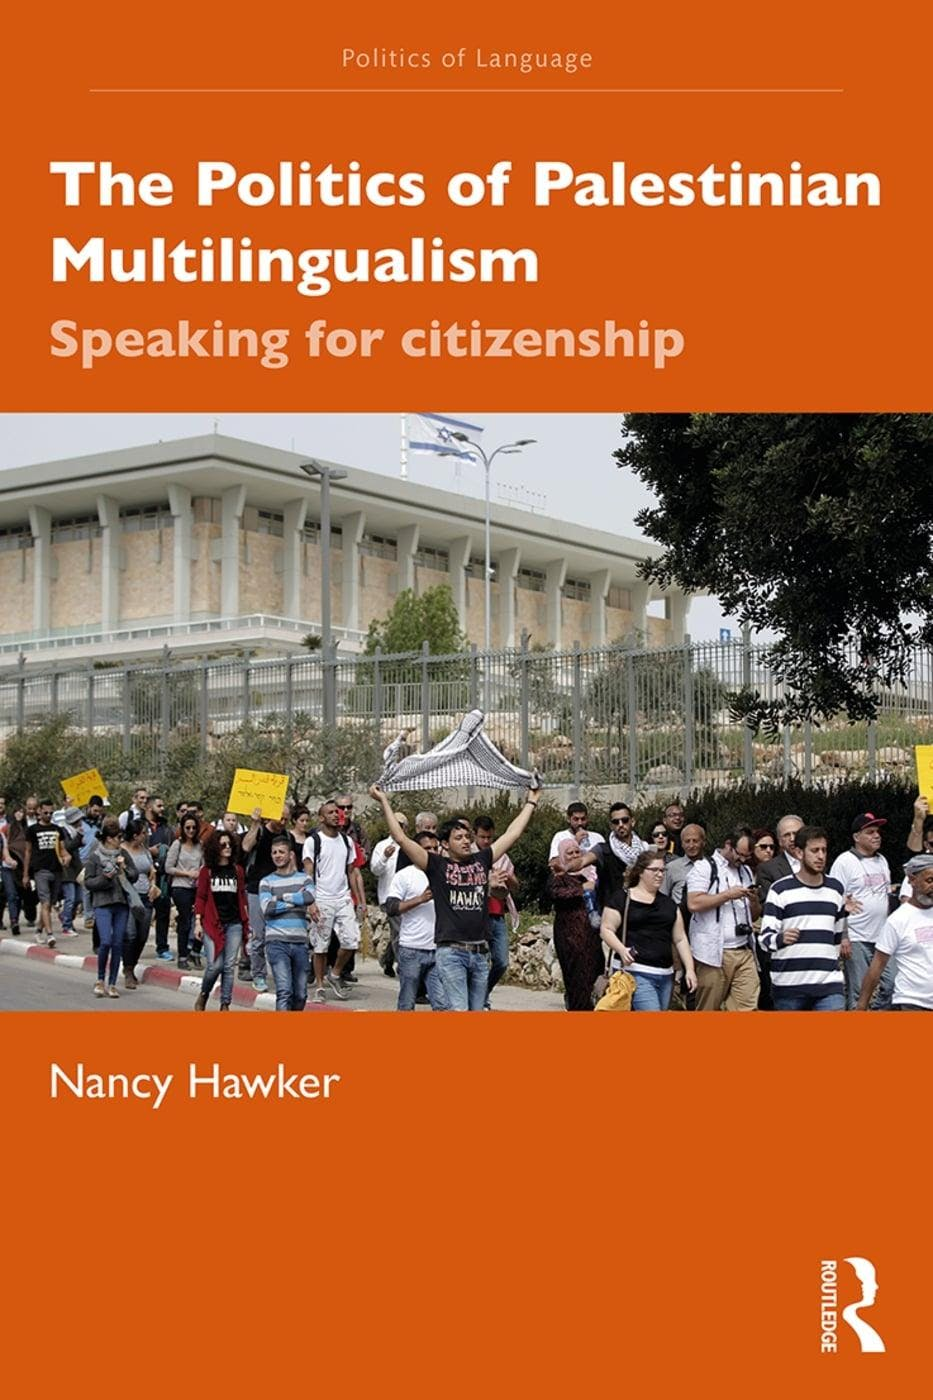 Book Launch - The Politics of Palestinian Multilingualism: Speaking for Citizenship